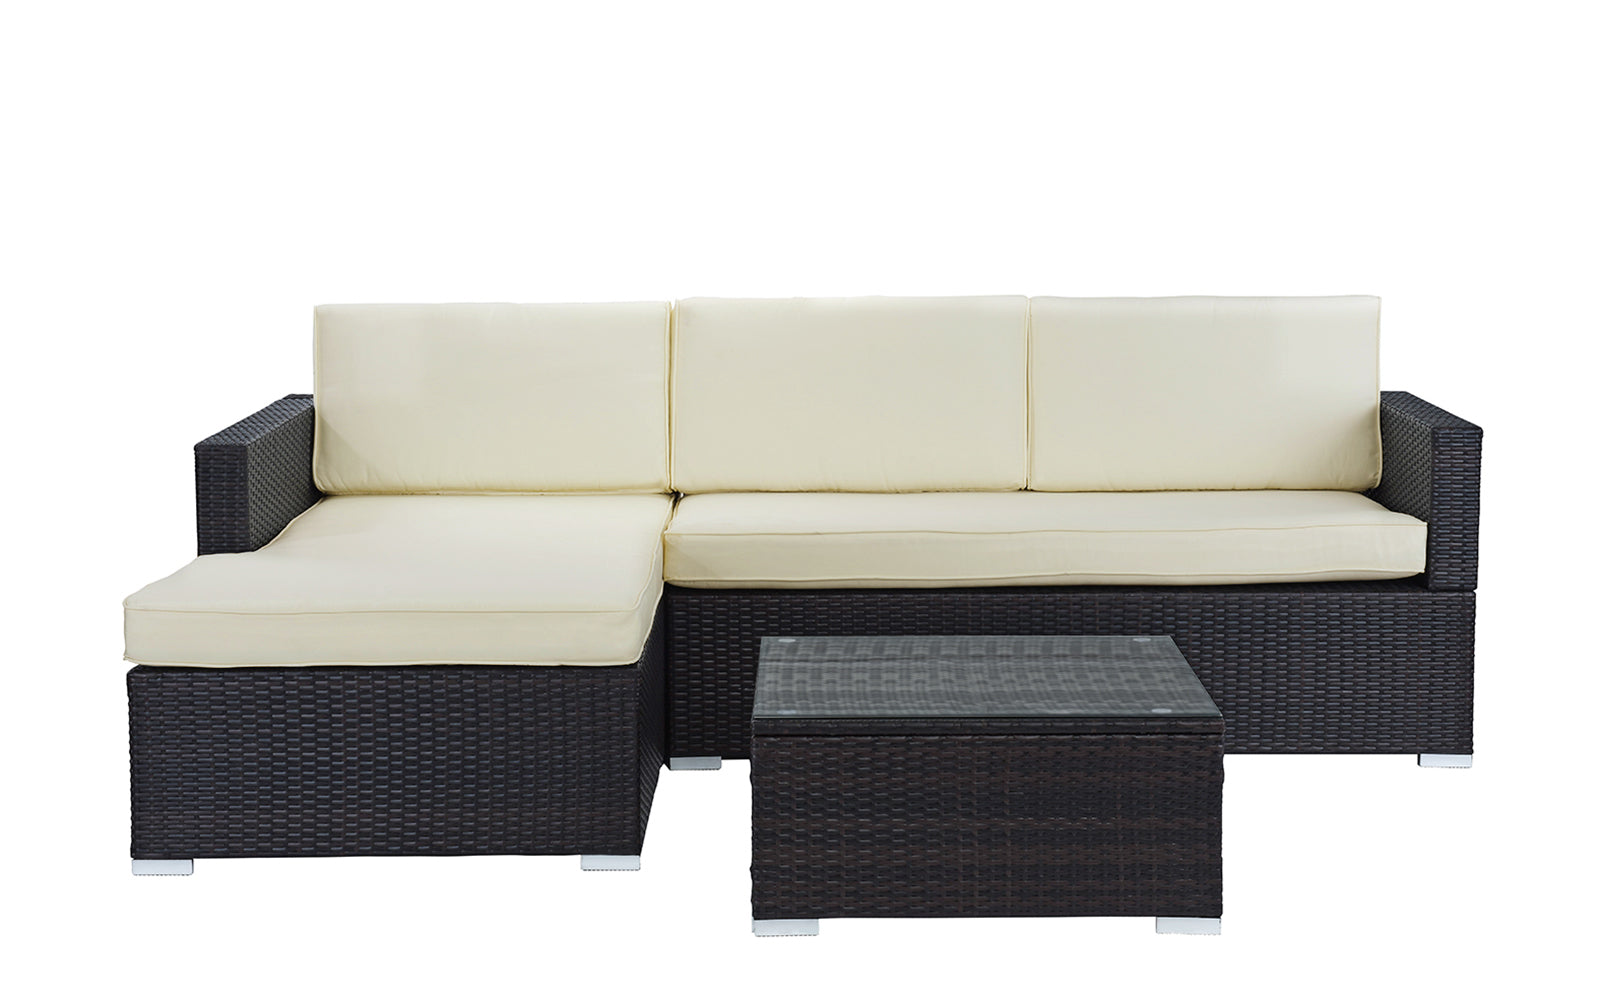 Outdoor Sectional Coffee Table Image